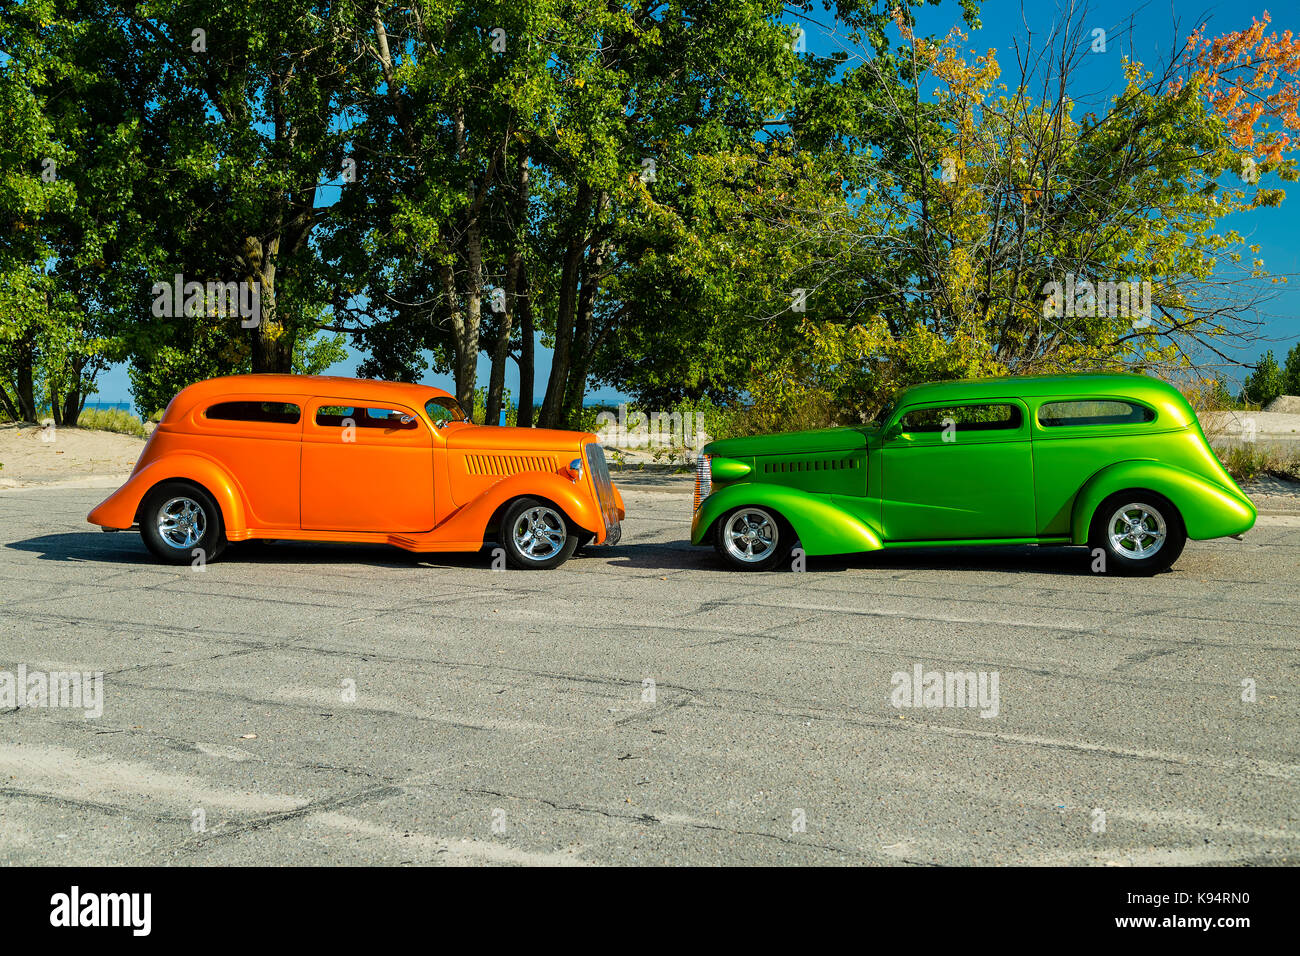 1938 Chevrolet Stock Photos & 1938 Chevrolet Stock Images